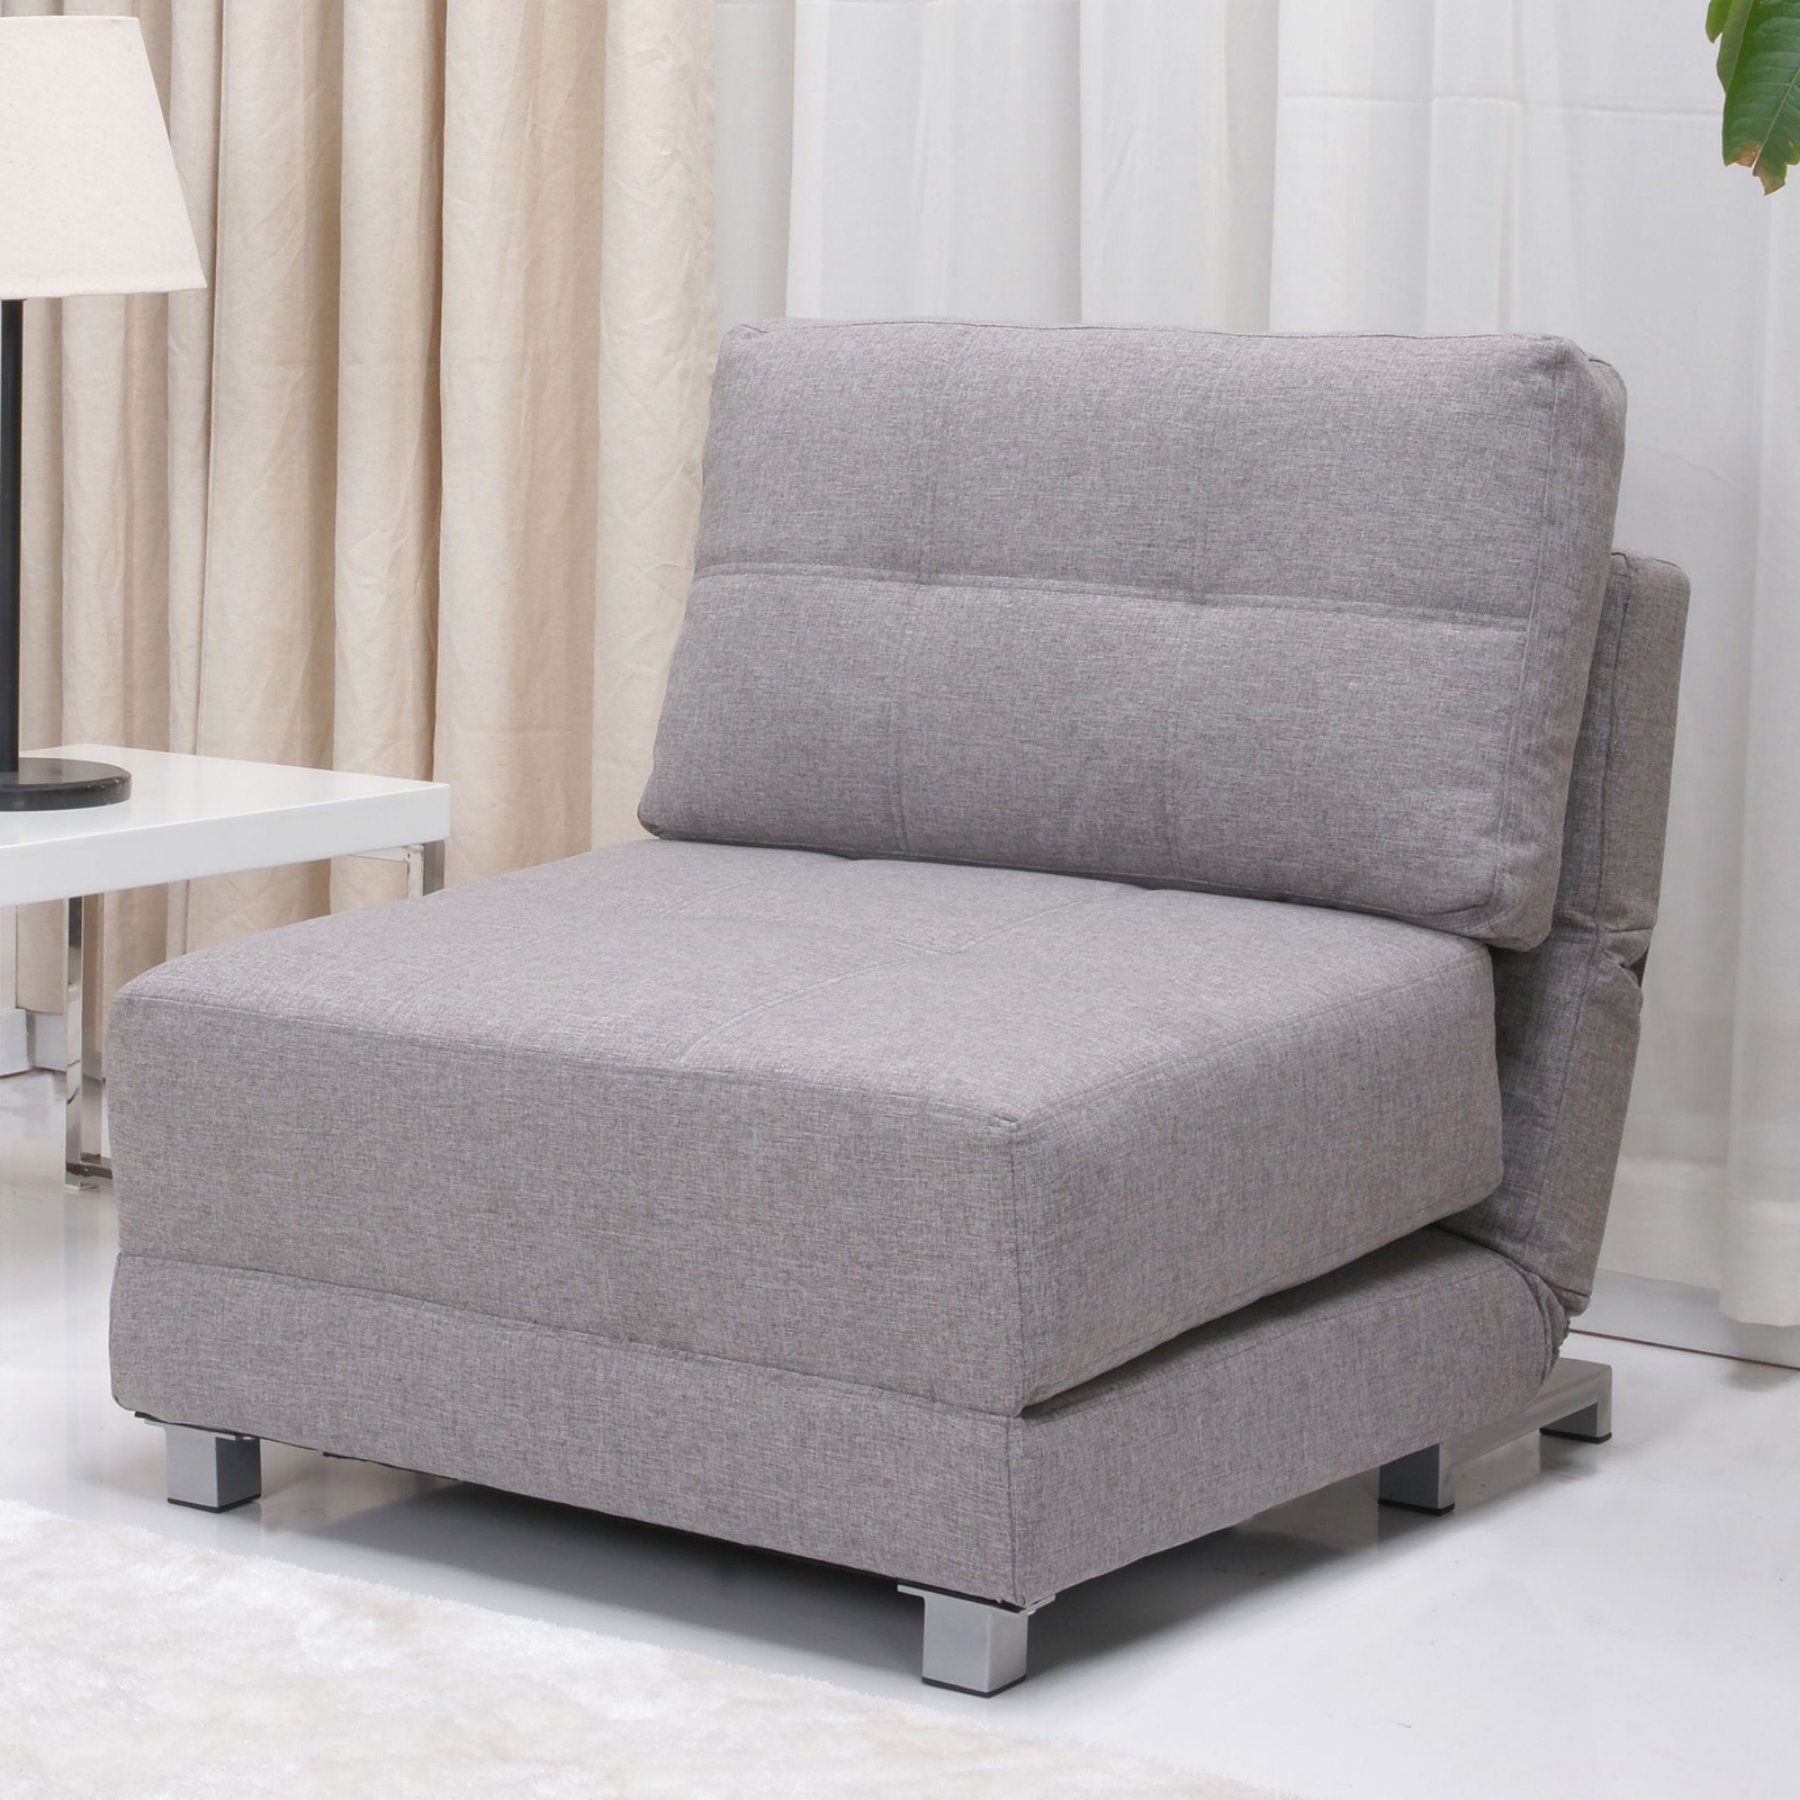 Bailey Roll Arm Skirted Swivel Gliders For Widely Used Brady Transitional Swivel Glider (Gallery 16 of 20)